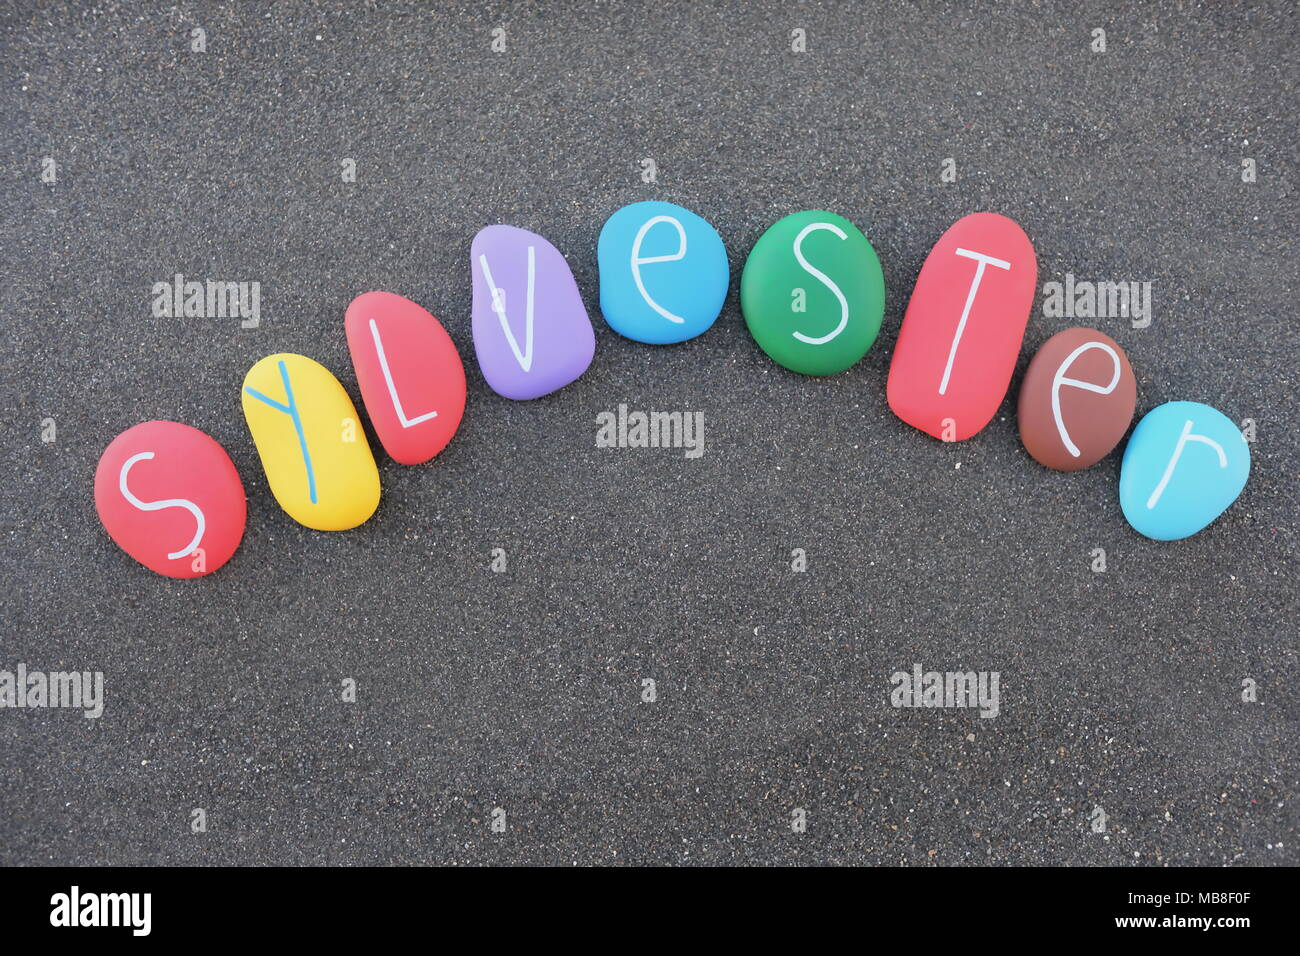 Sylvester, masculine name with multicolored stones over natural volcanic black sand Stock Photo